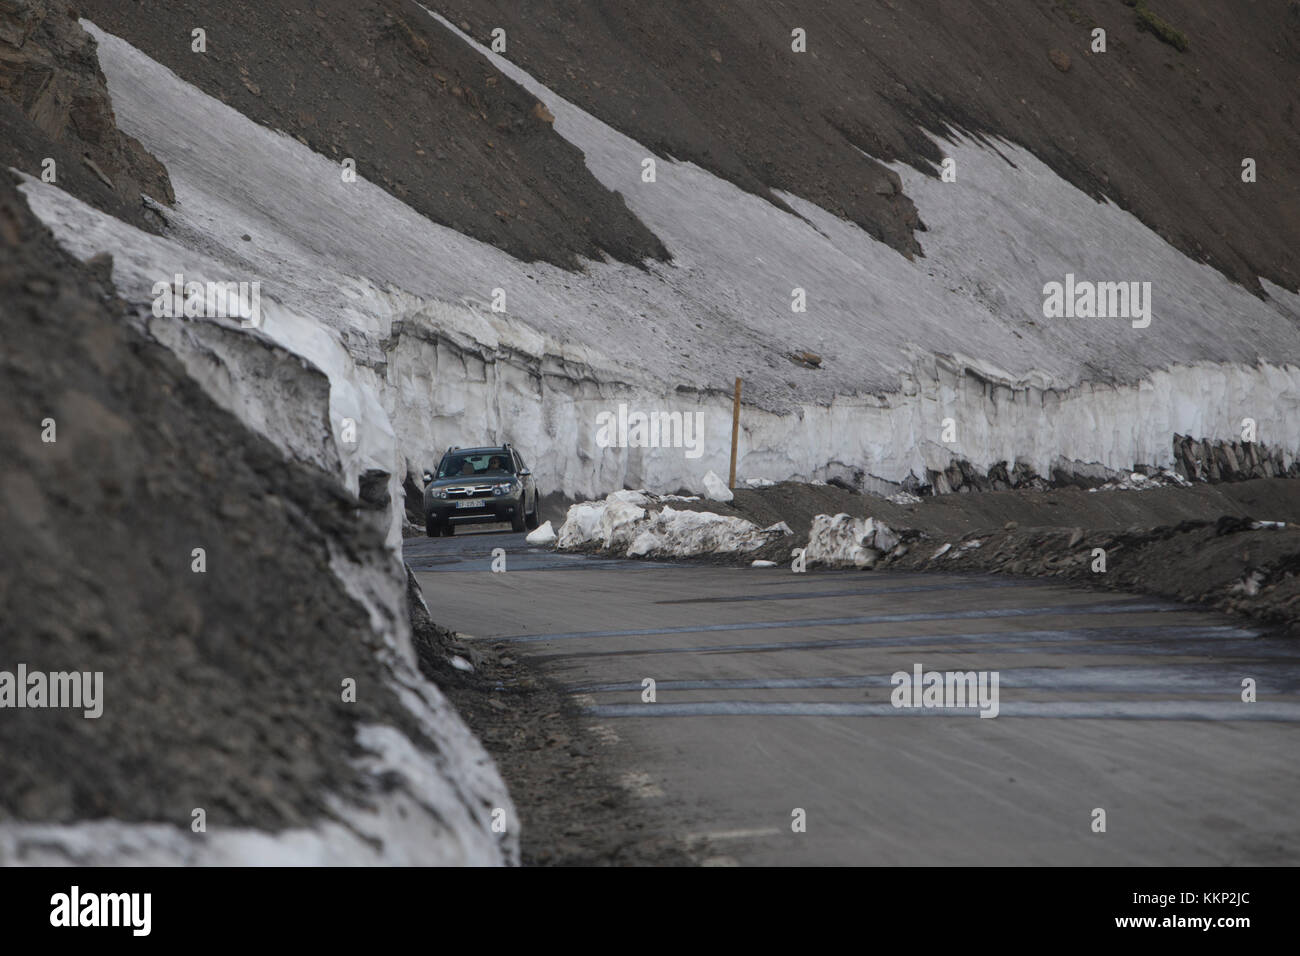 A car drives along mountain road bordered by snow at Col de la Bonette, France in June 2017 Stock Photo